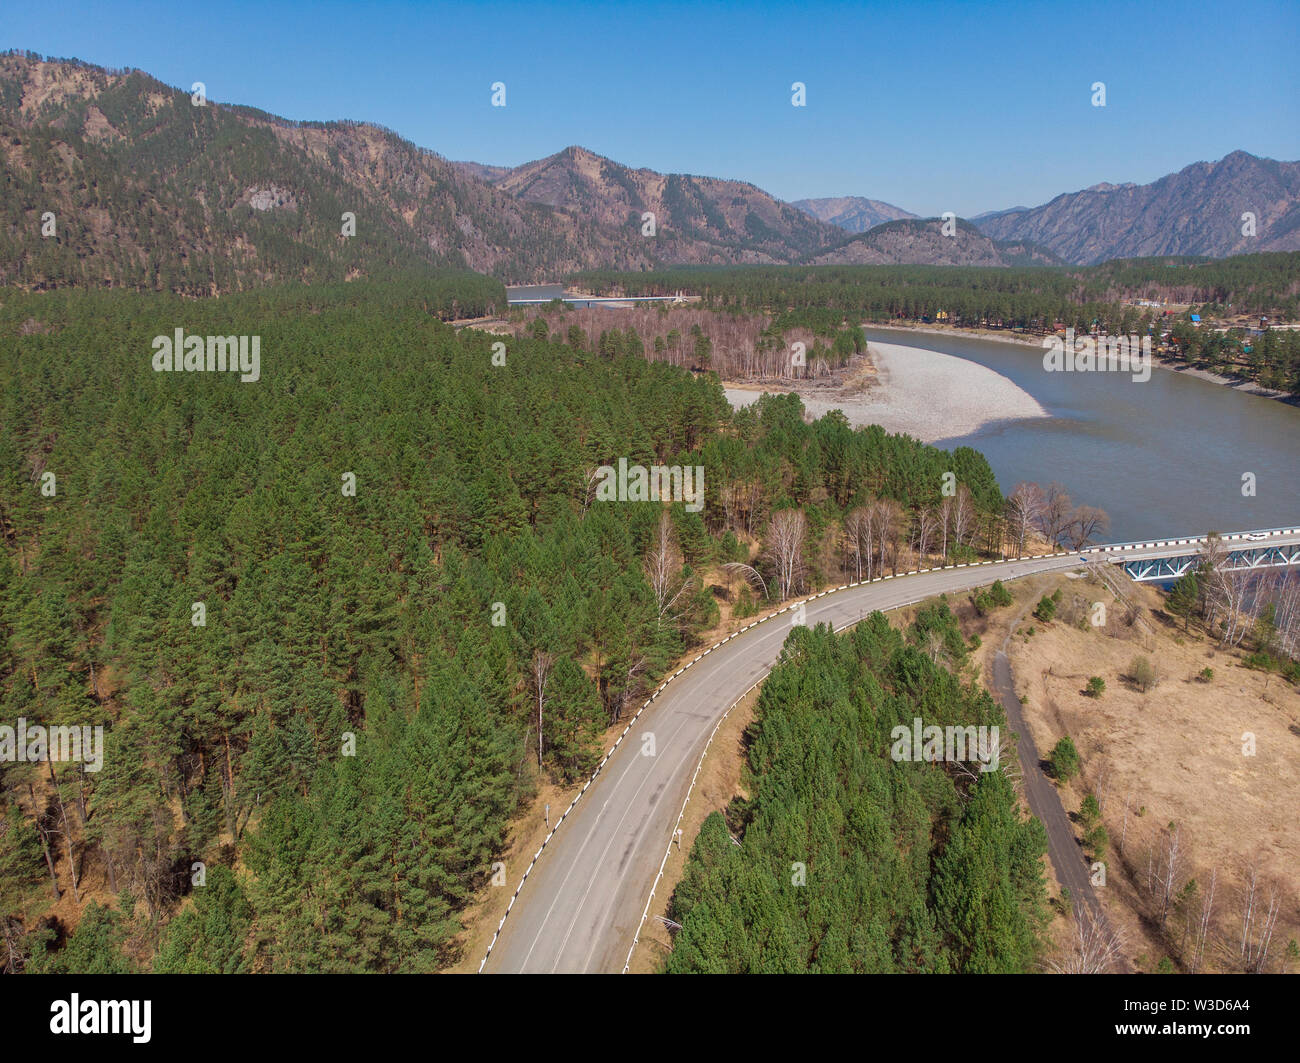 Aerial view of a road in summer landscape - Stock Image